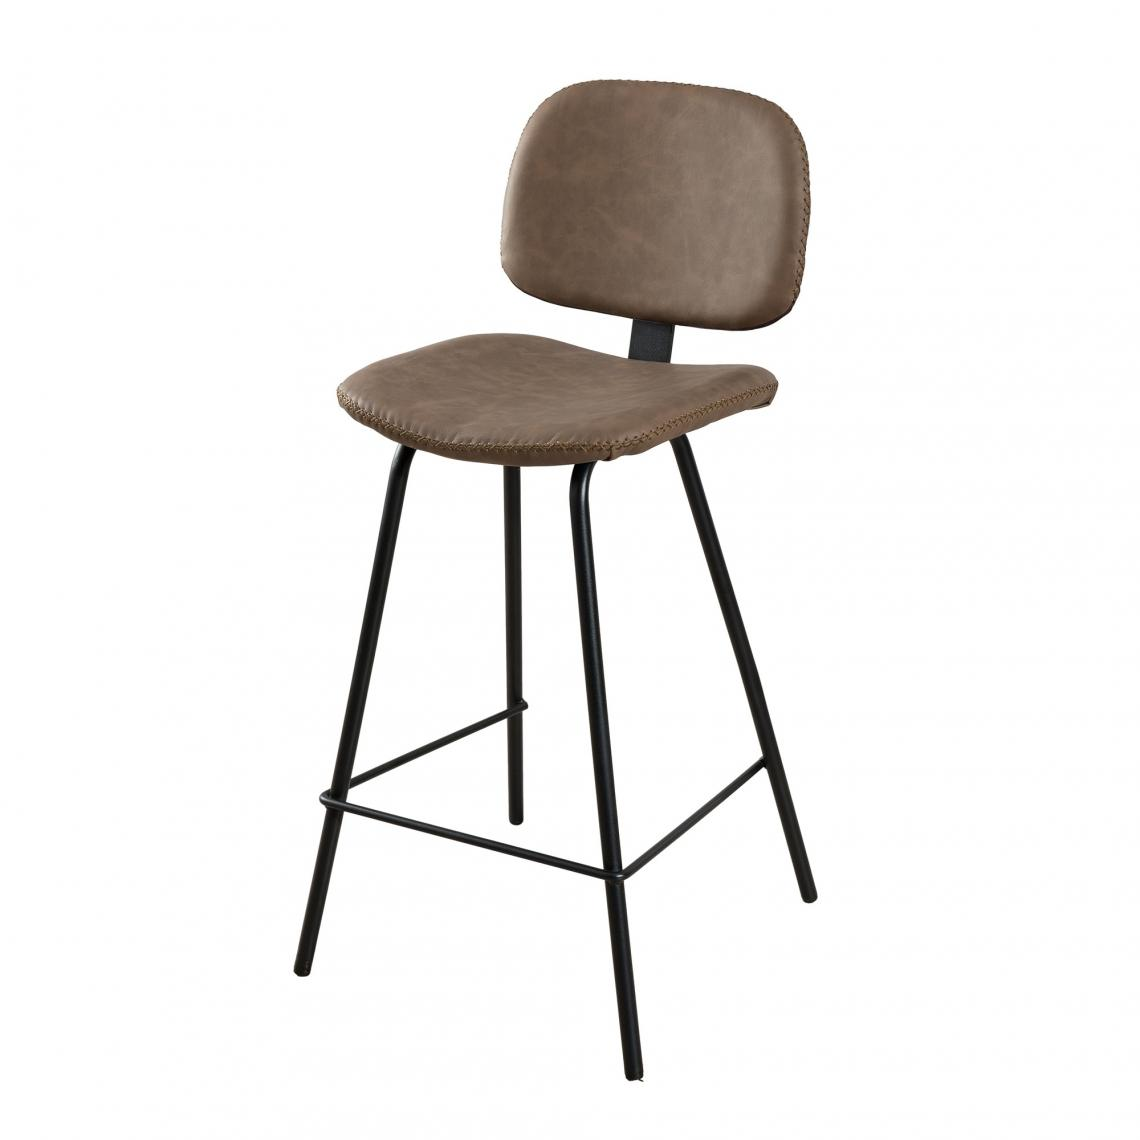 De 2 Lot Bar Suisses Chaises Jimmy Marron3 F1lu3KJTc